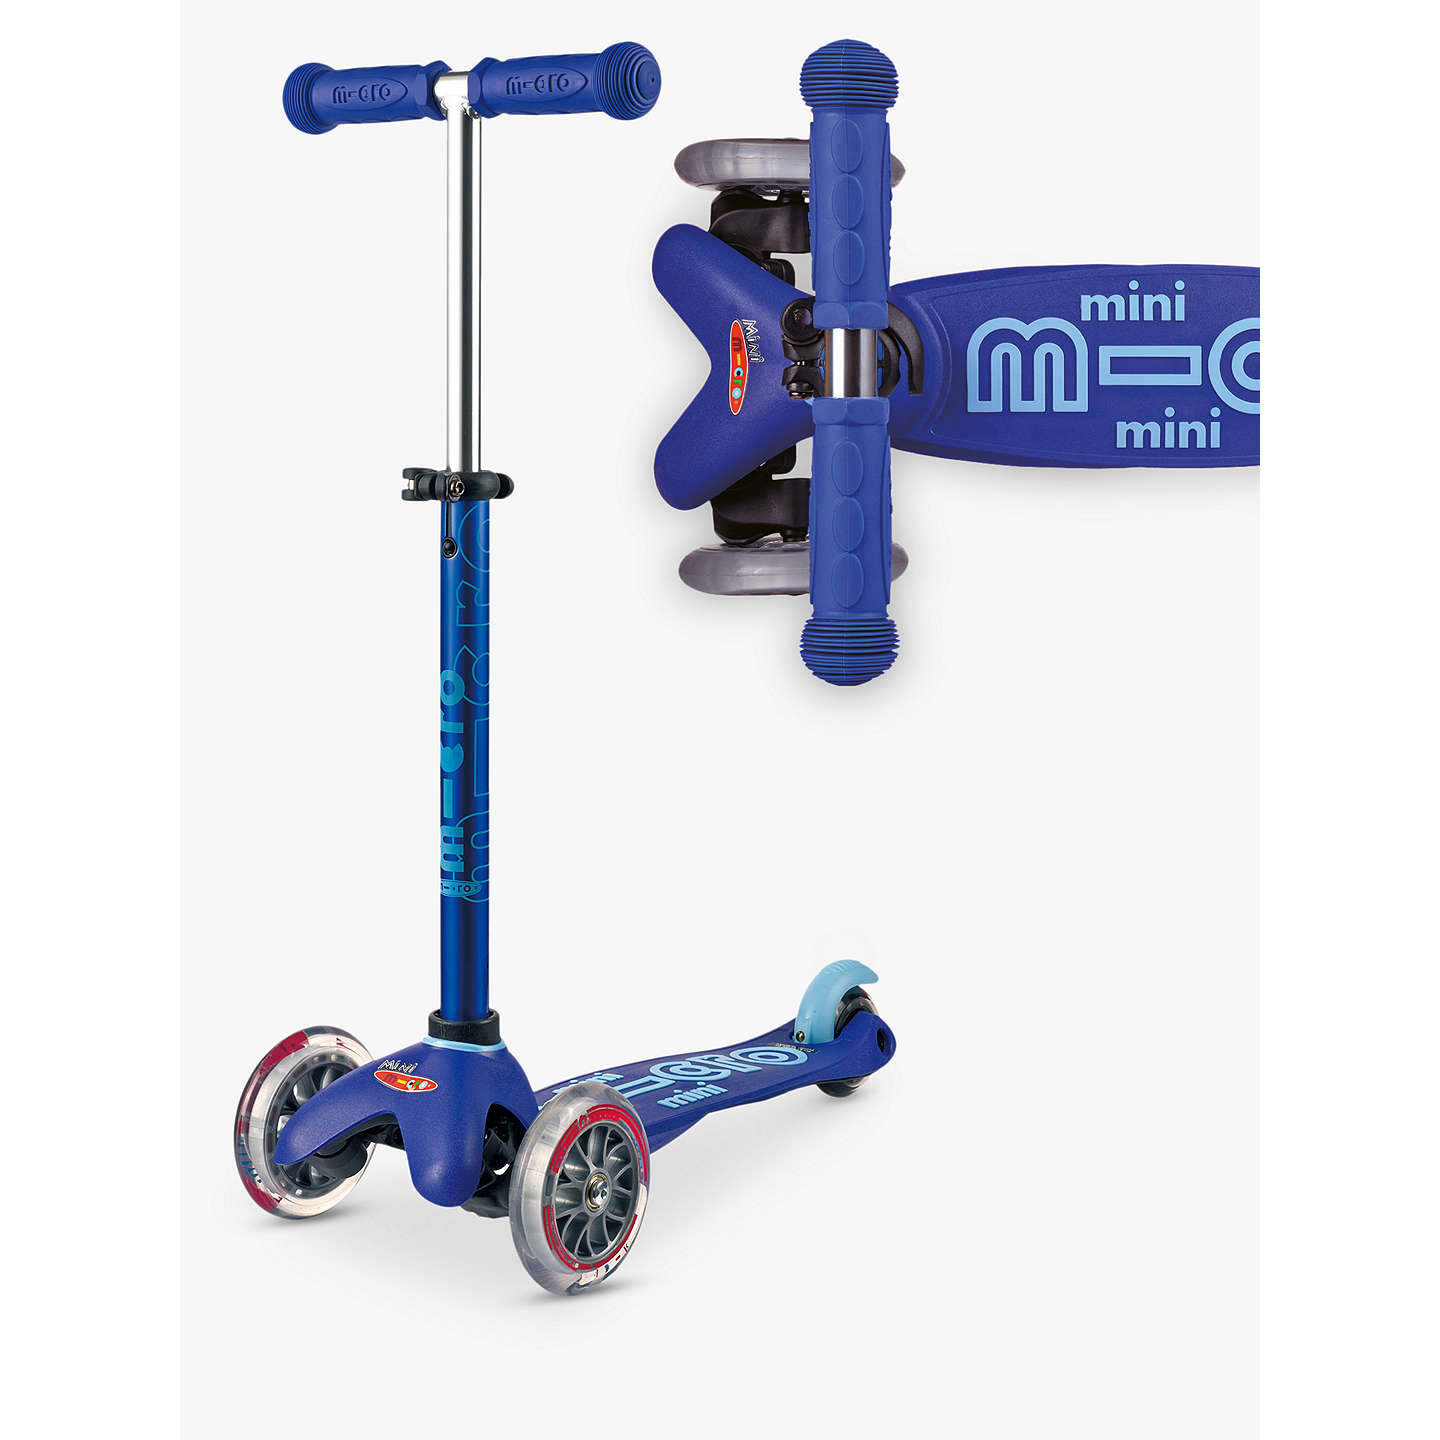 Mini Micro Deluxe Scooter 2 5 Years At John Lewis